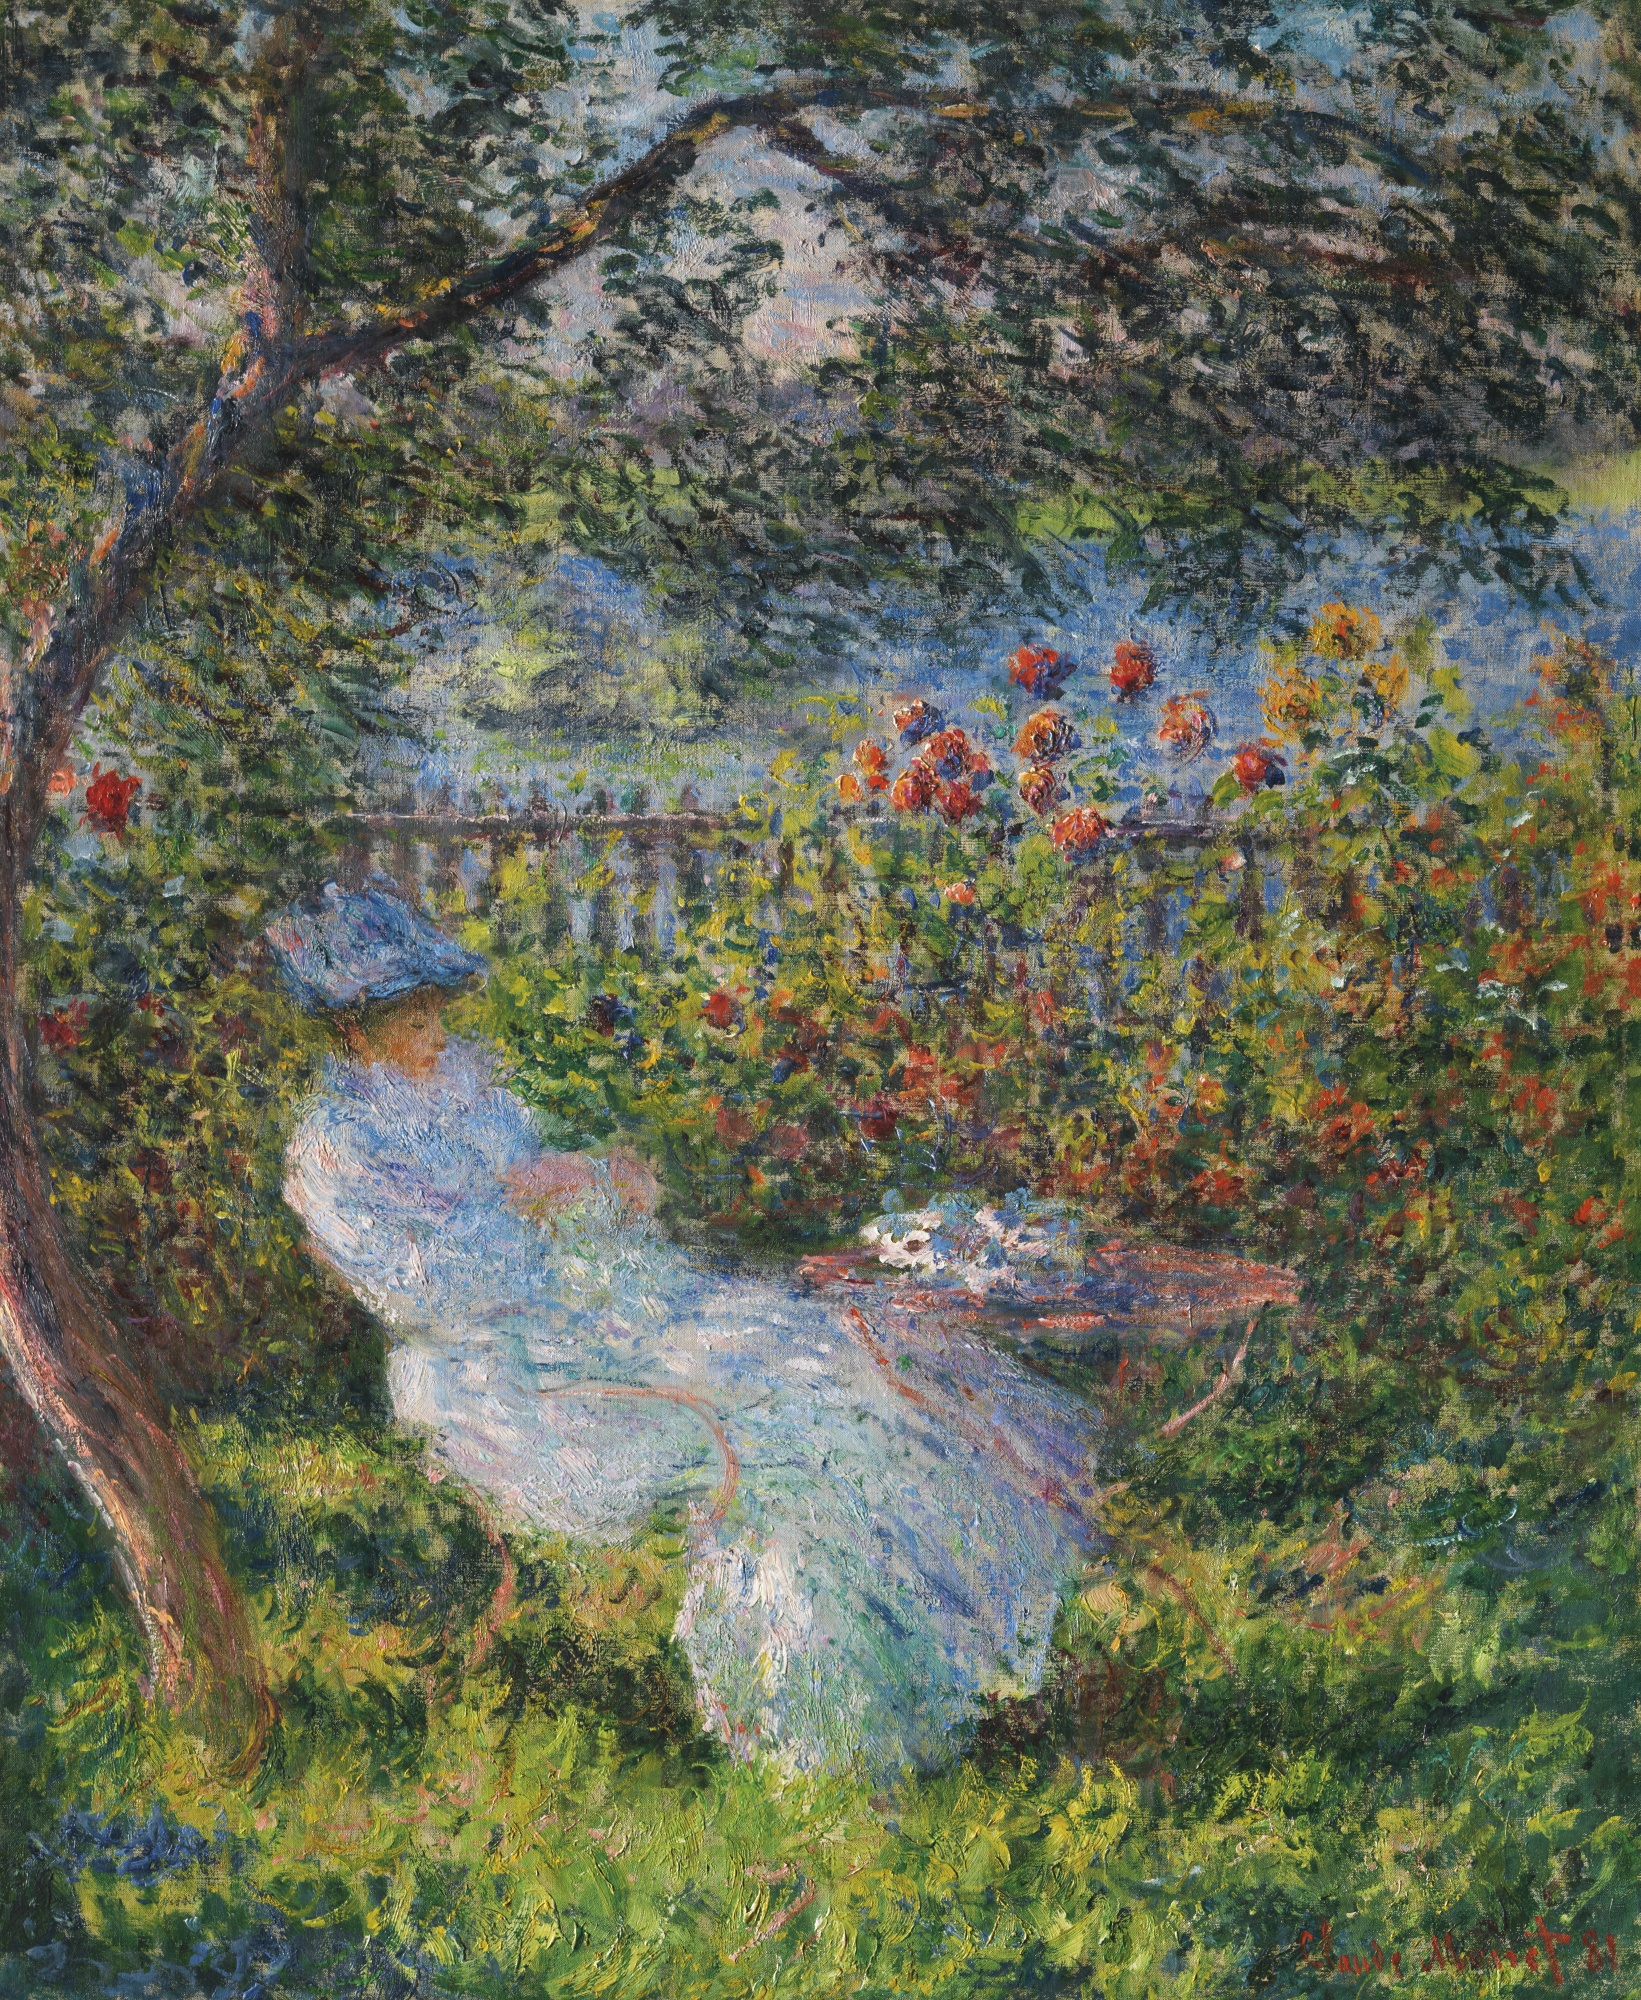 File:Claude Monet - Alice Hoschedé au jardin.jpg - Wikimedia Commons